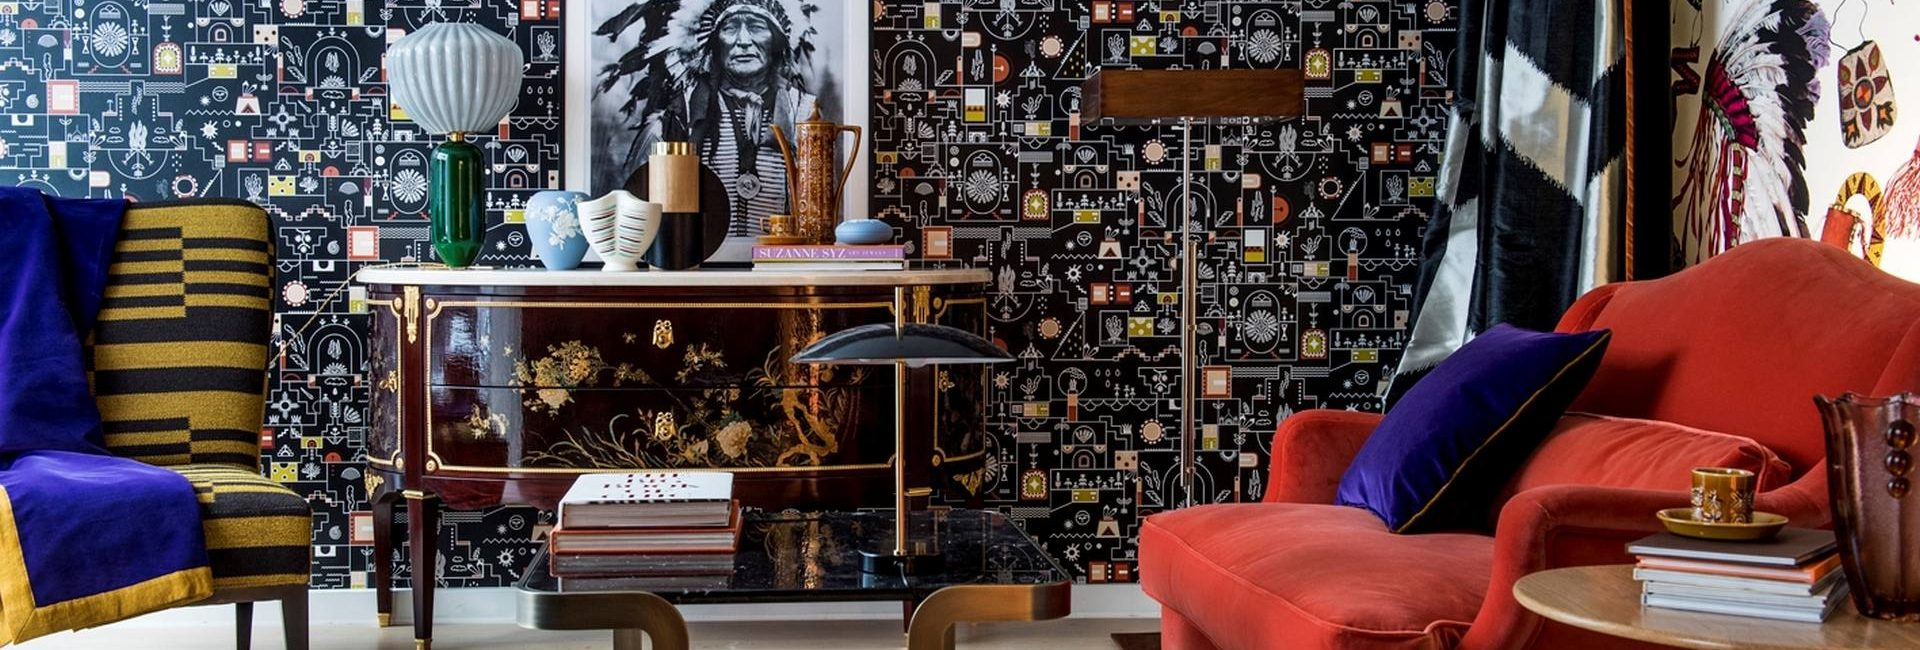 Eclectic roomset by Pierre Frey including furnishings, fabric and wallpaper all available from Fabric Gallery and Interiors in Dunnington, York